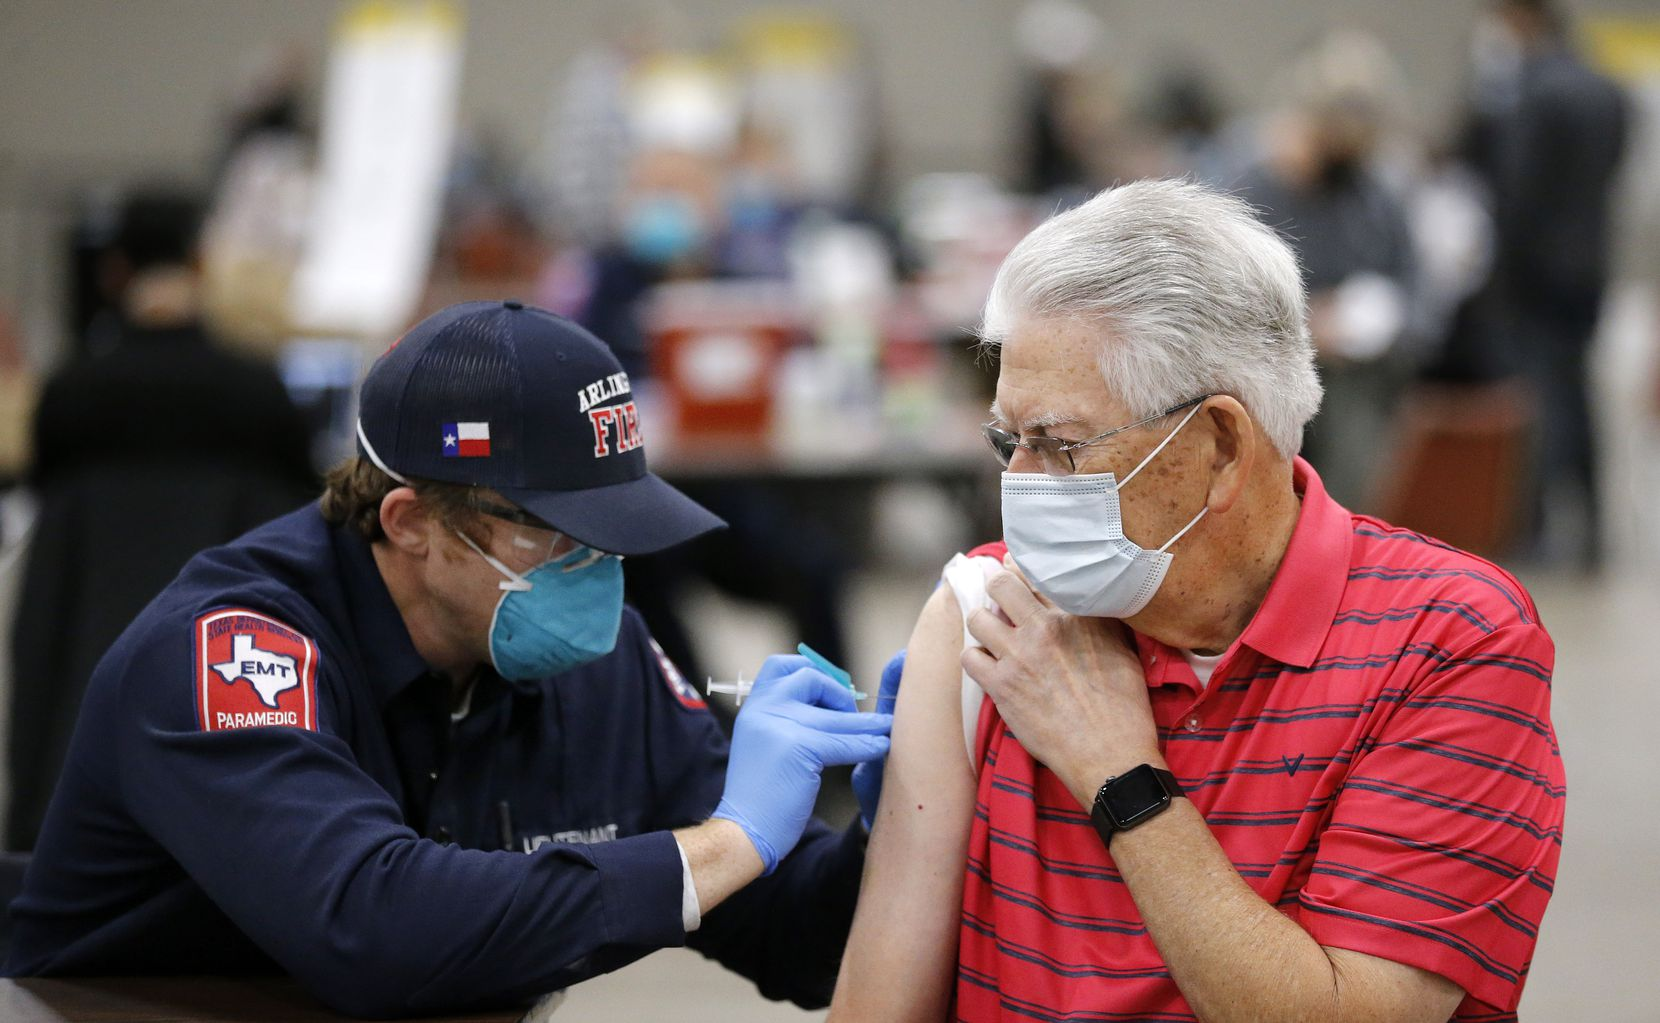 Jim Cox, 79, receives a COVID-19 vaccination from Arlington Fire Lt. Joshua Jones at Esports Stadium Arlington & Expo Center, a mass vaccination site in Arlington, Texas, Monday, January 11, 2021. The hub site is distributing over 2,000 vaccinations a day.